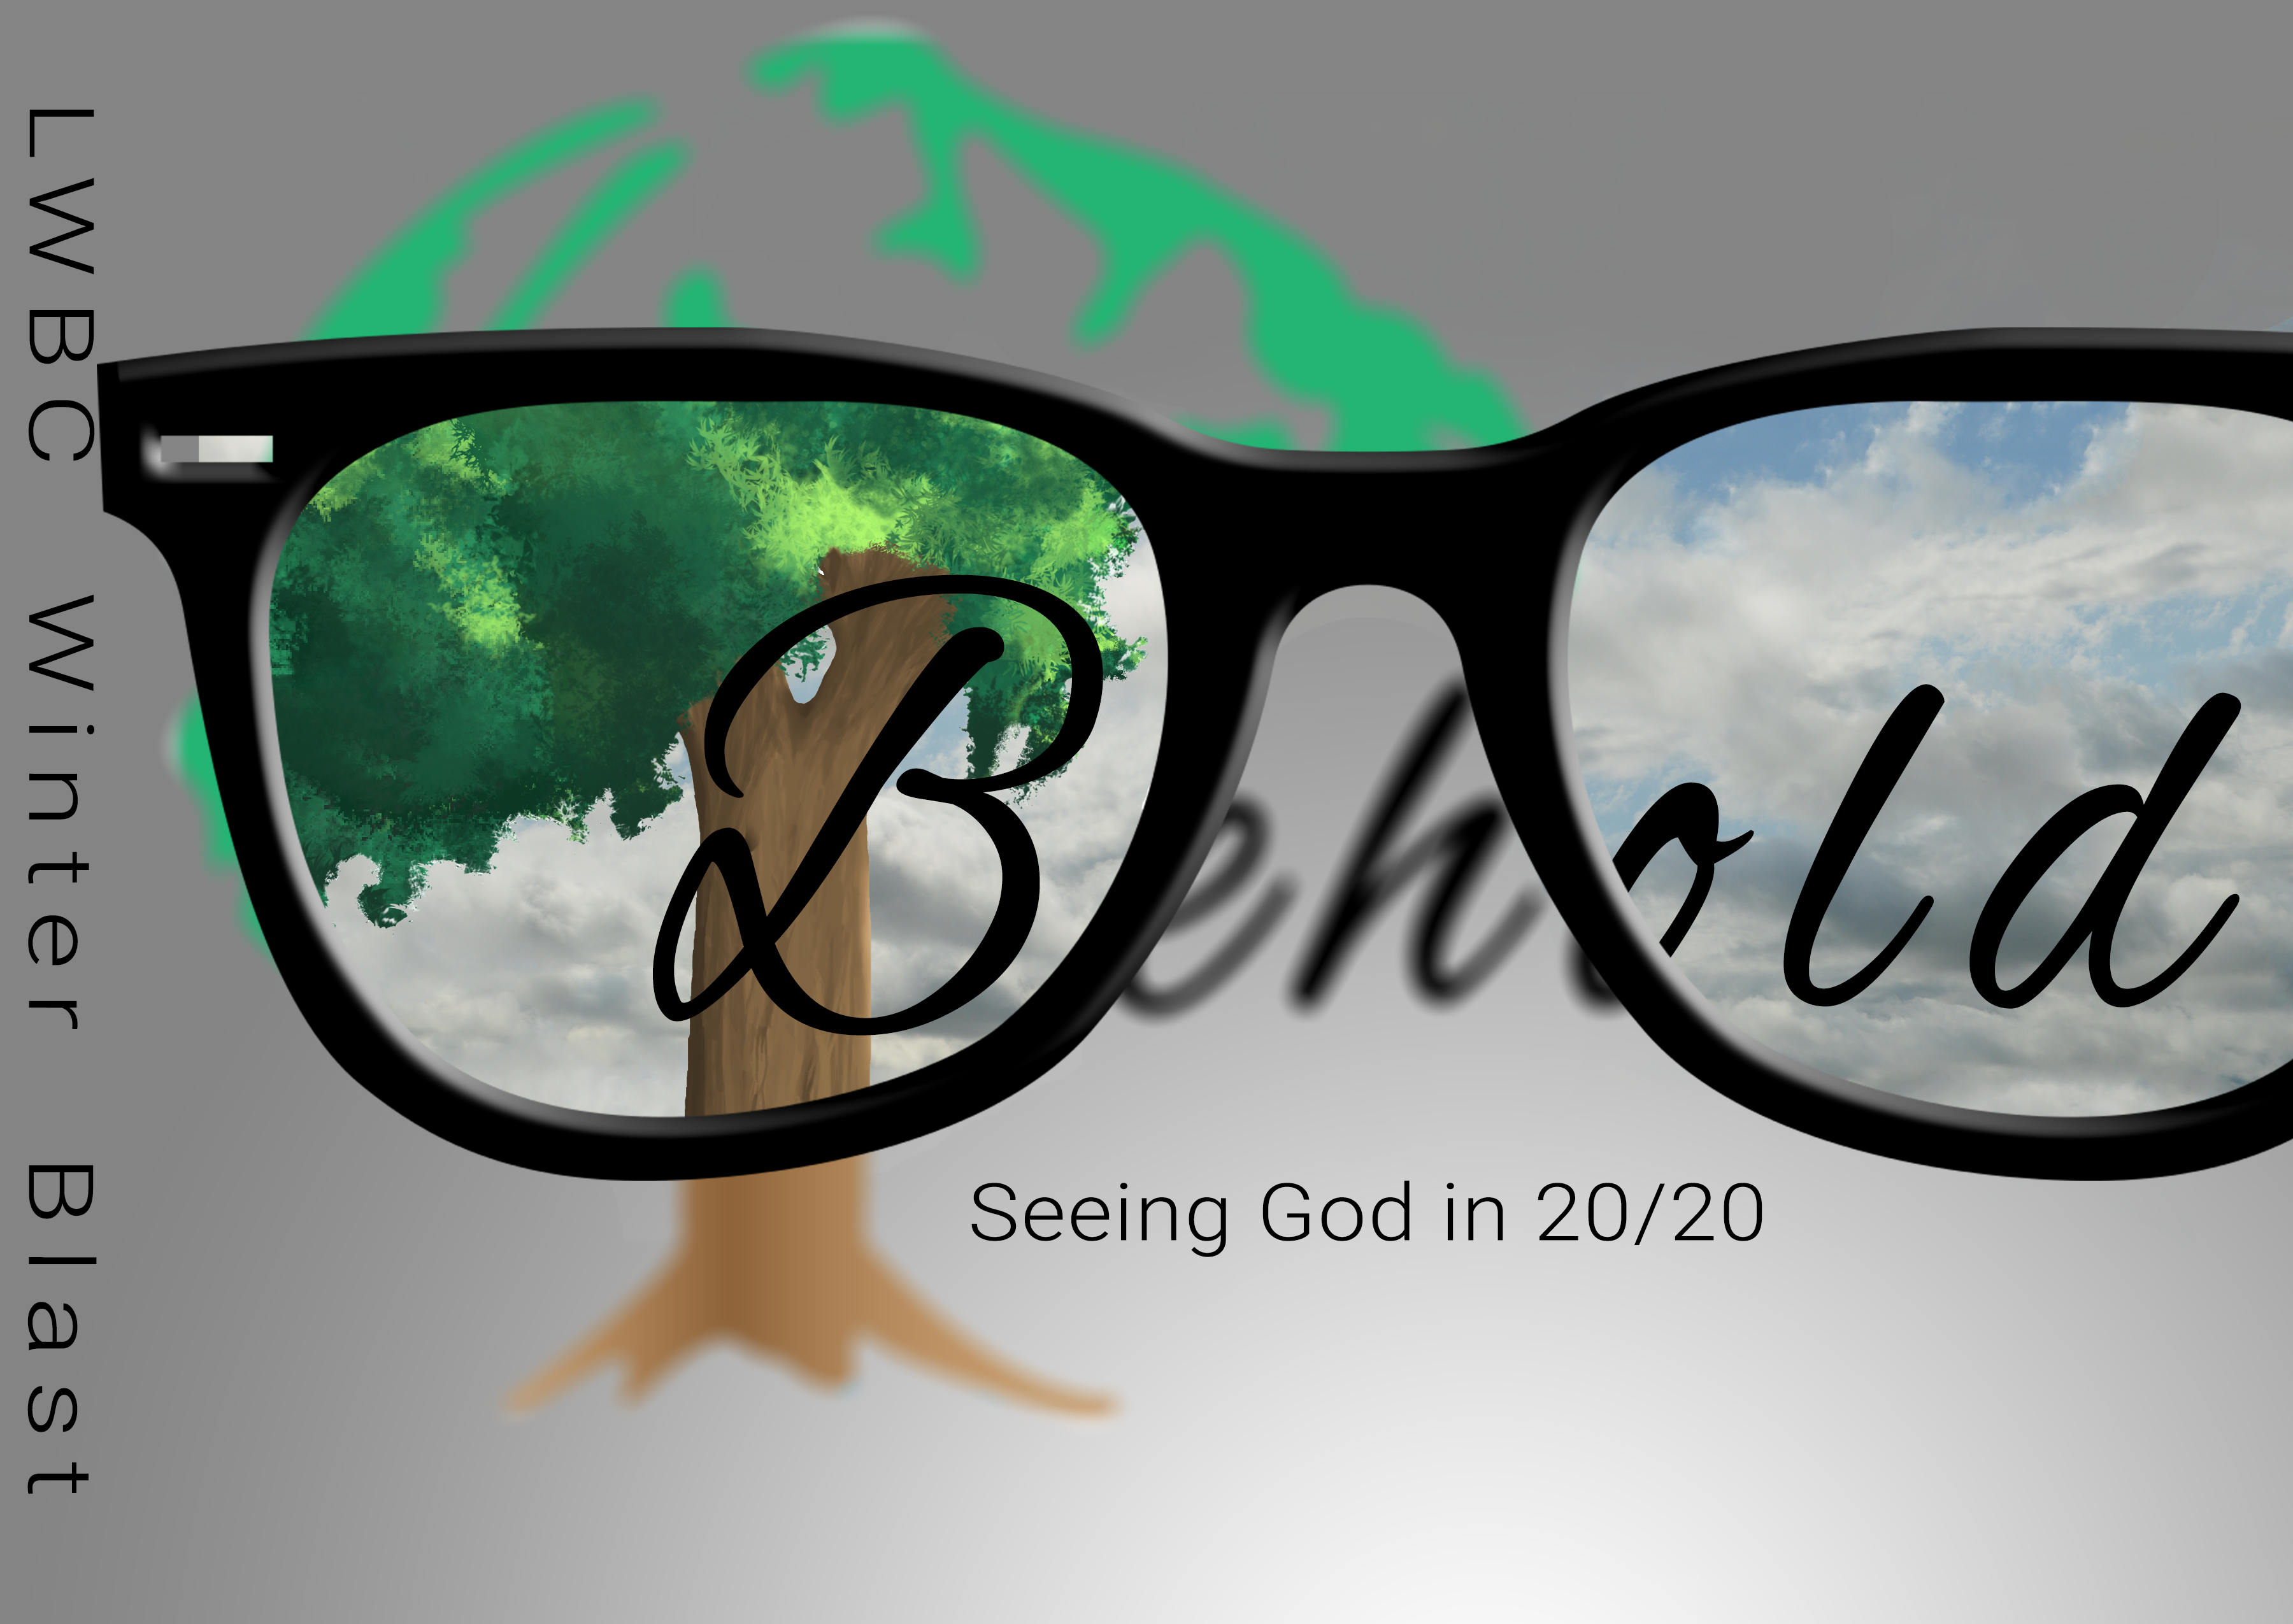 Seeing God in 2020